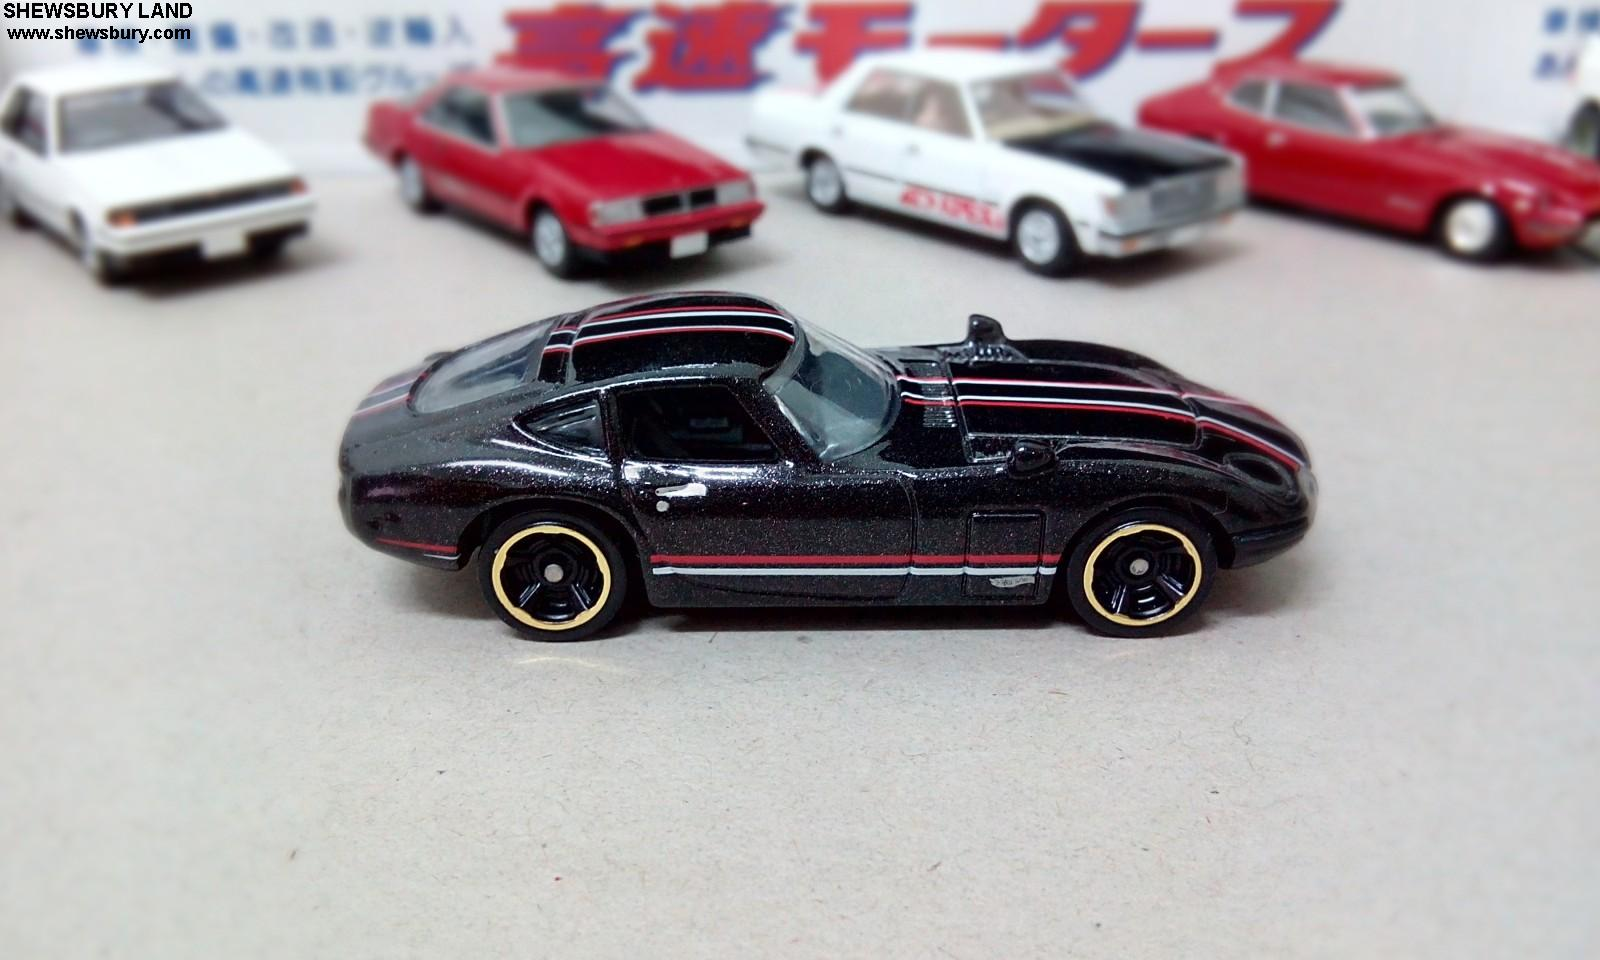 toyota 2000gt is a rare iconic japanese sports car produced by toyota and probably even till today it is still one of the best sports car ever produced by - Rare Hot Wheels Cars 2015